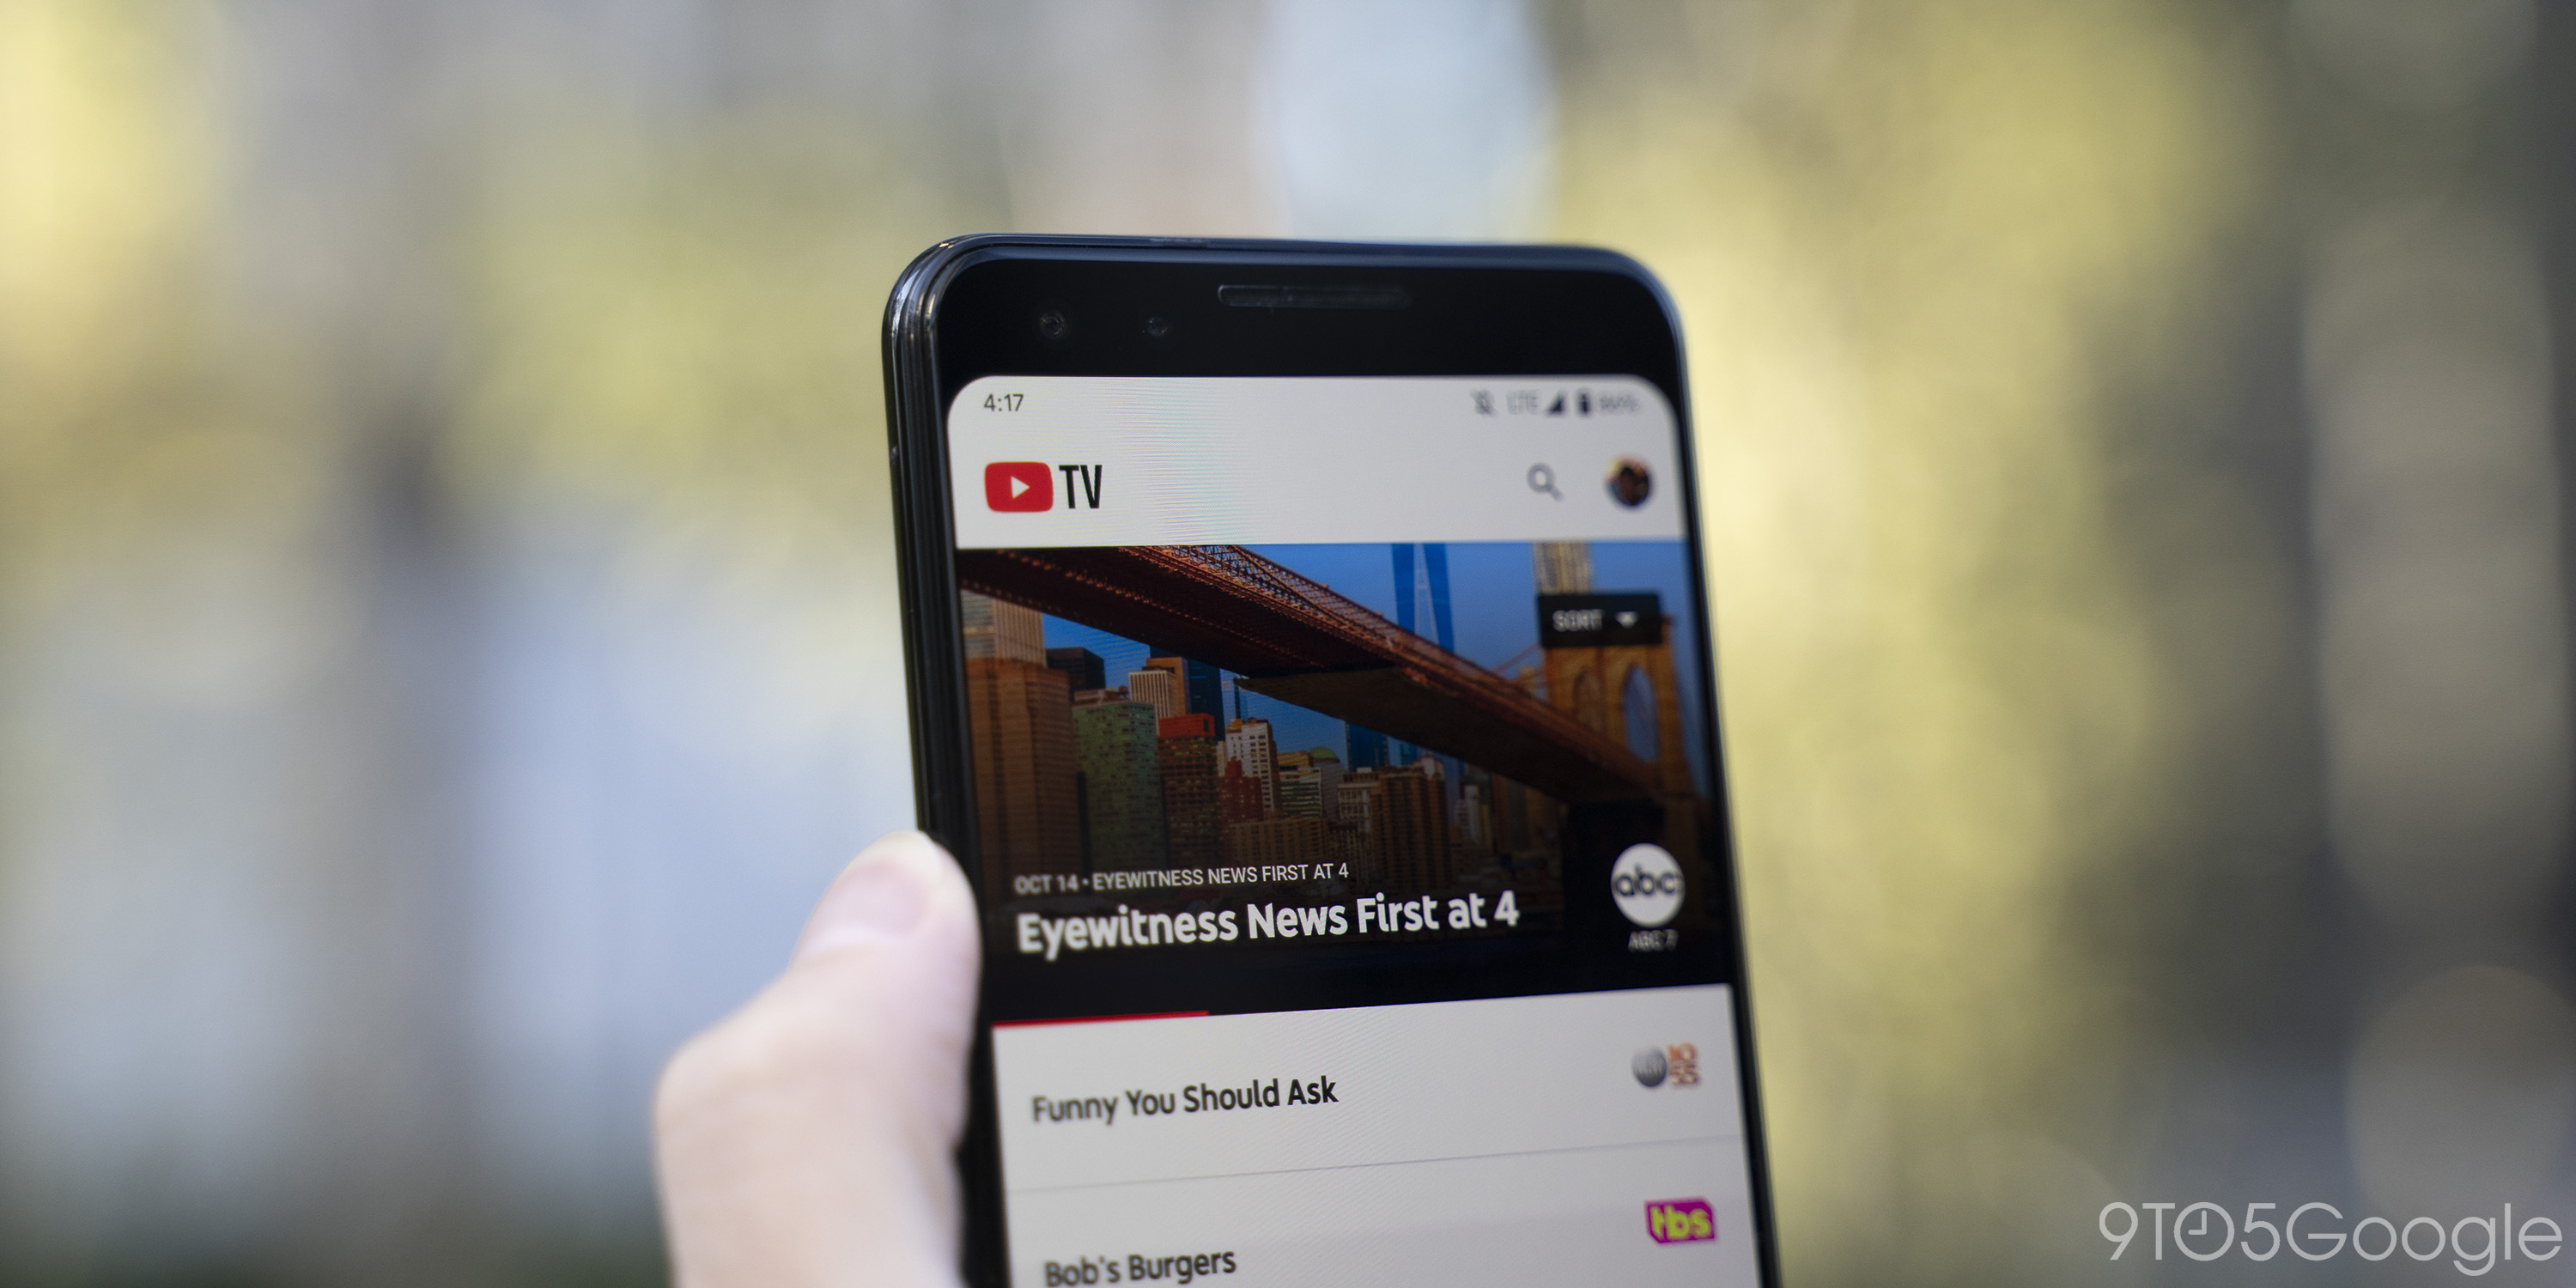 Youtube Tv S Showtime Price Reverts To 11 Month 9to5google